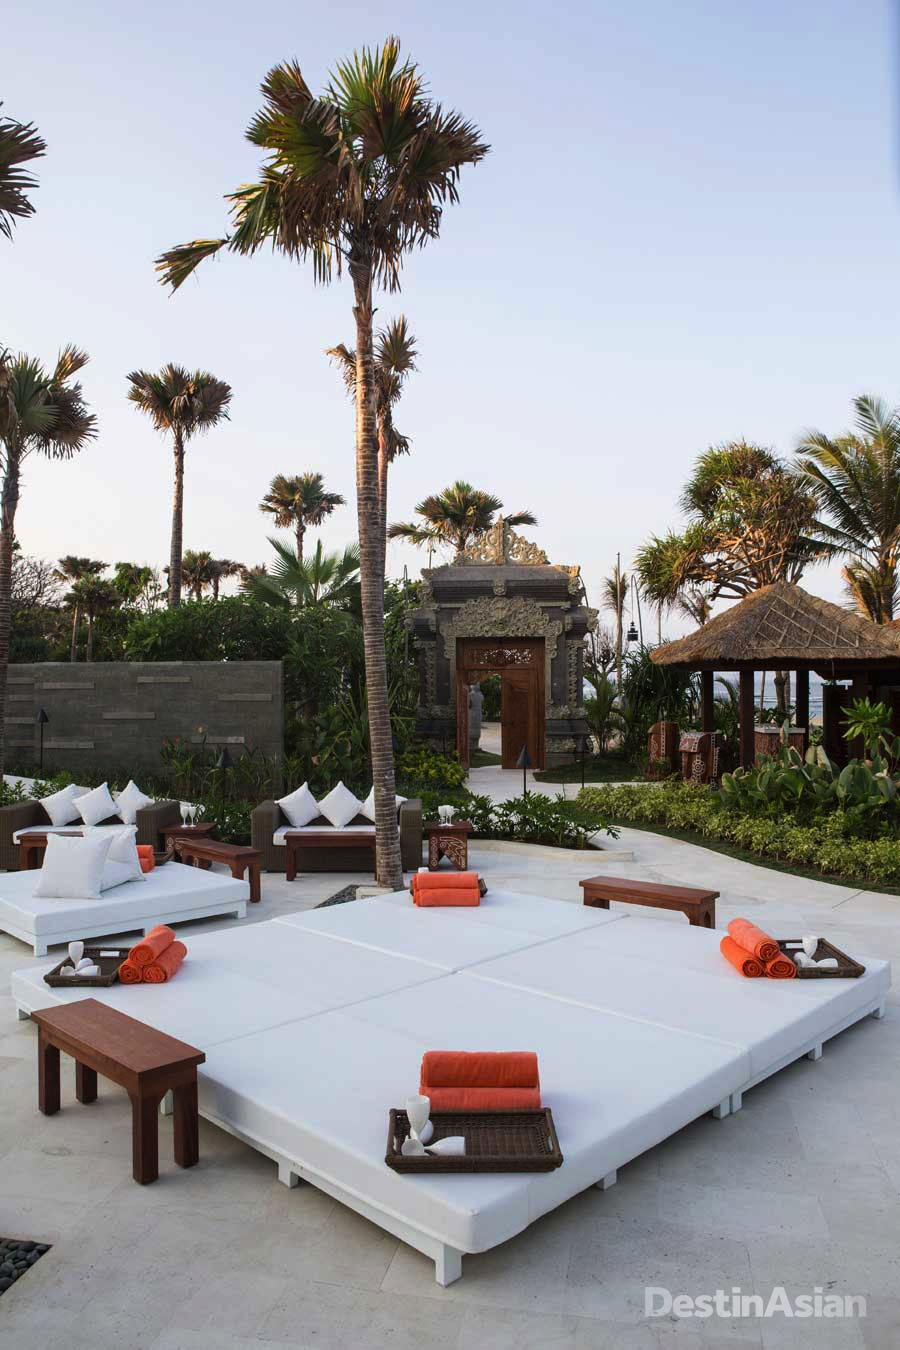 Nikki Beach's signature all-white daybeds.